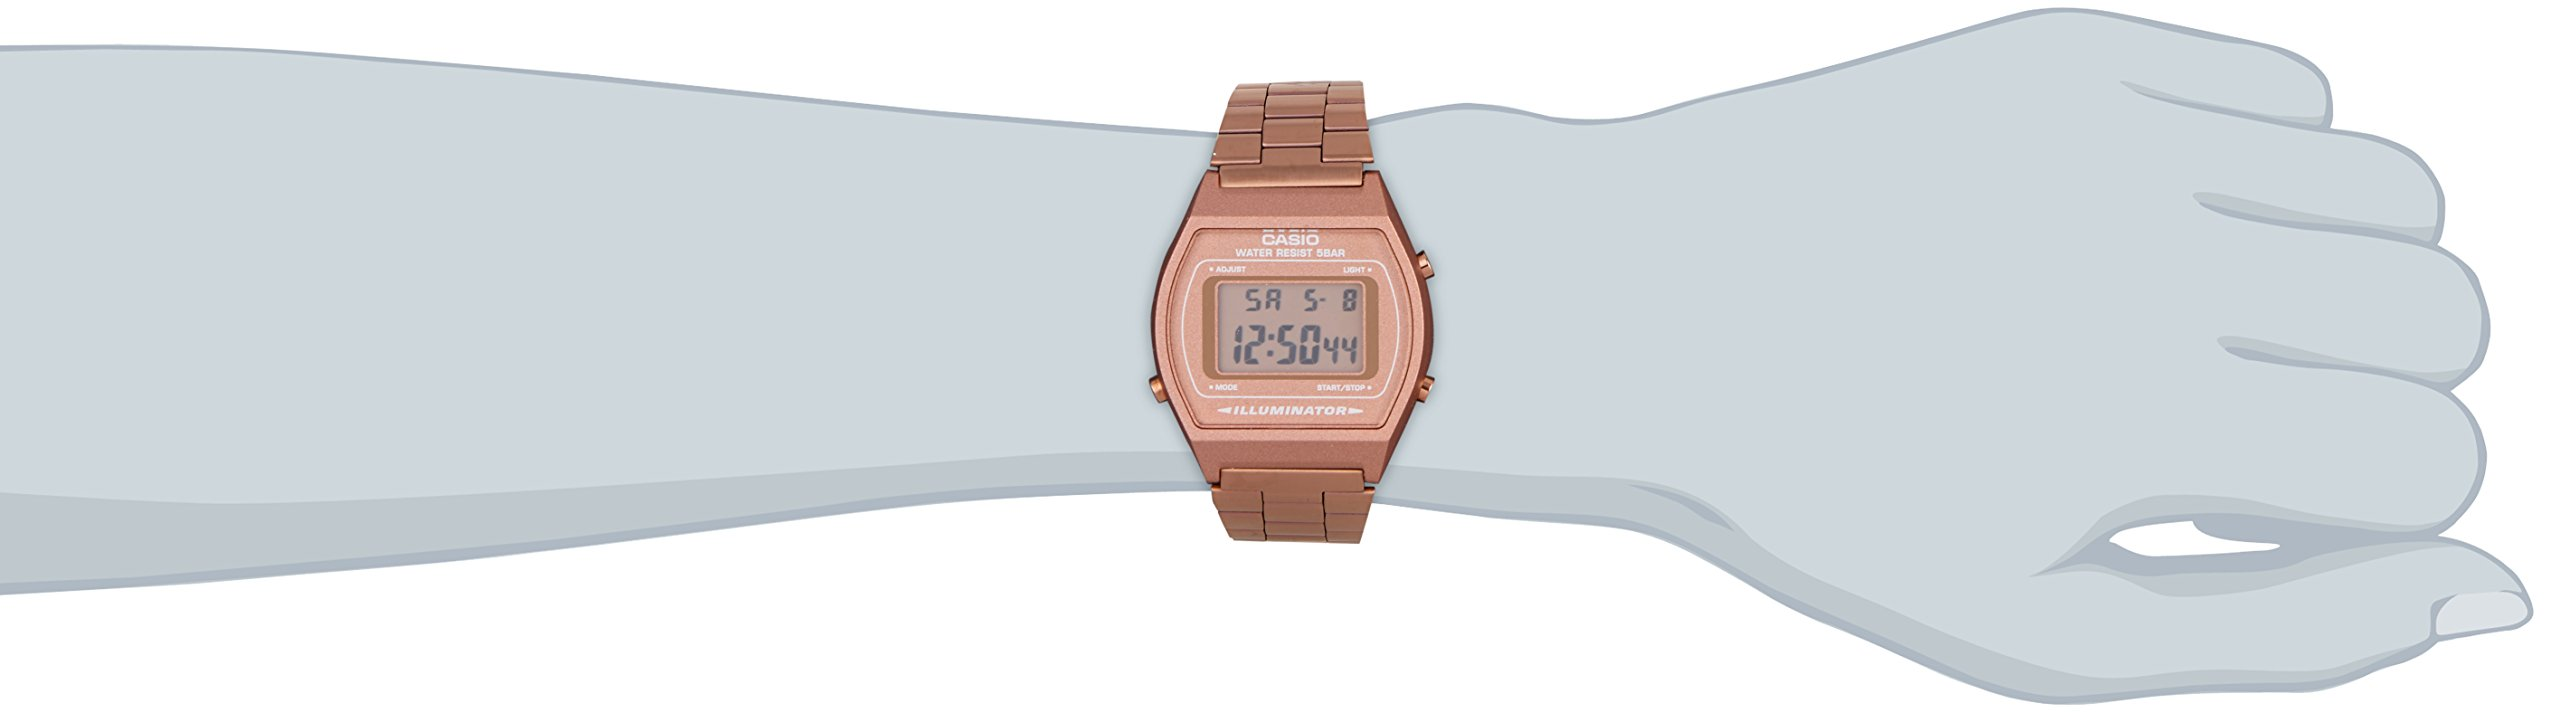 Casio-Collection-UnisexRetro-Armbanduhr